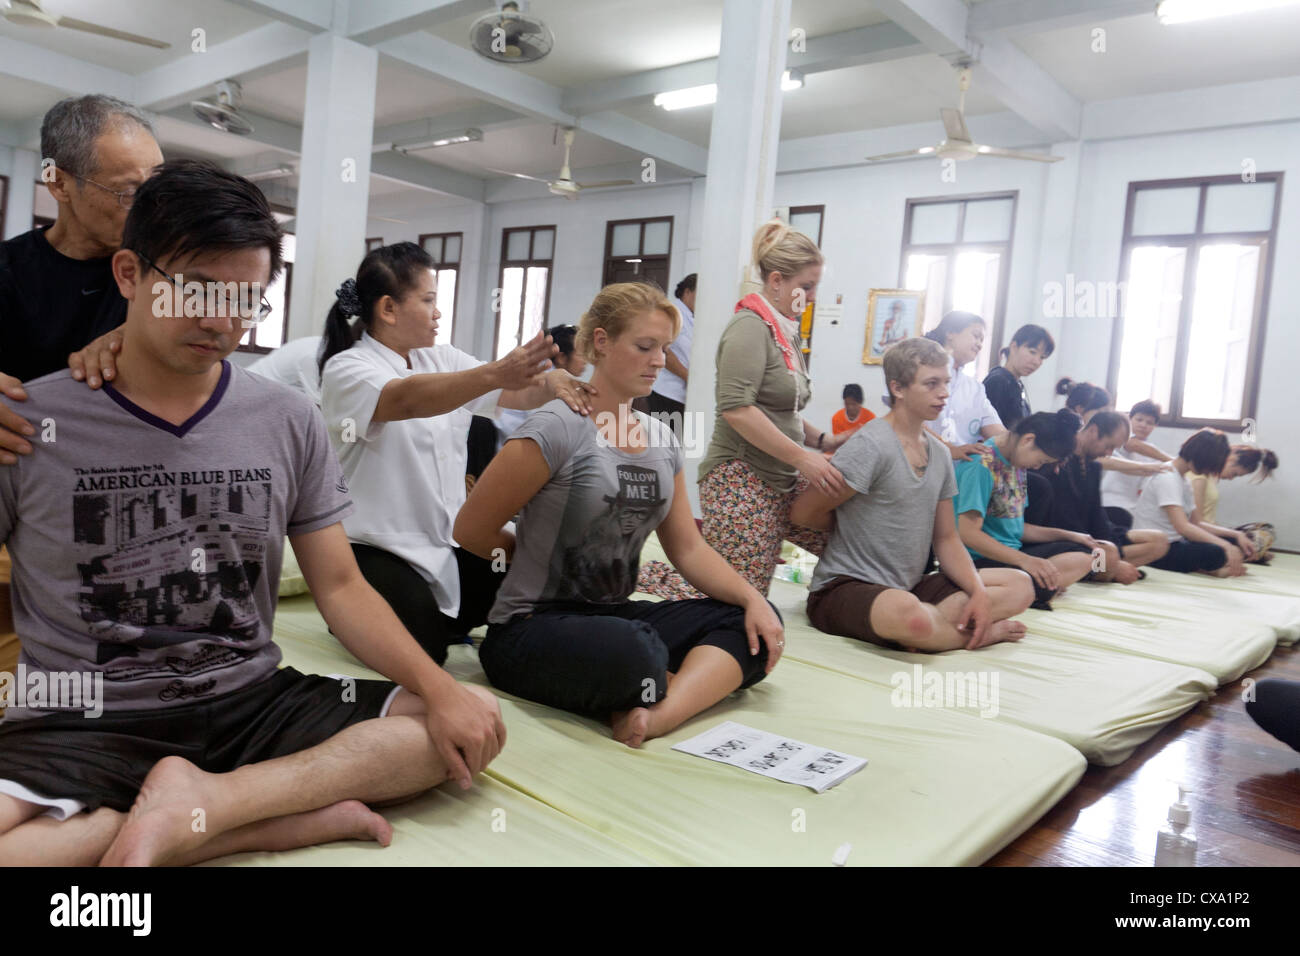 Hvad Pho Thai Traditionelle Massage Skole Bangkok